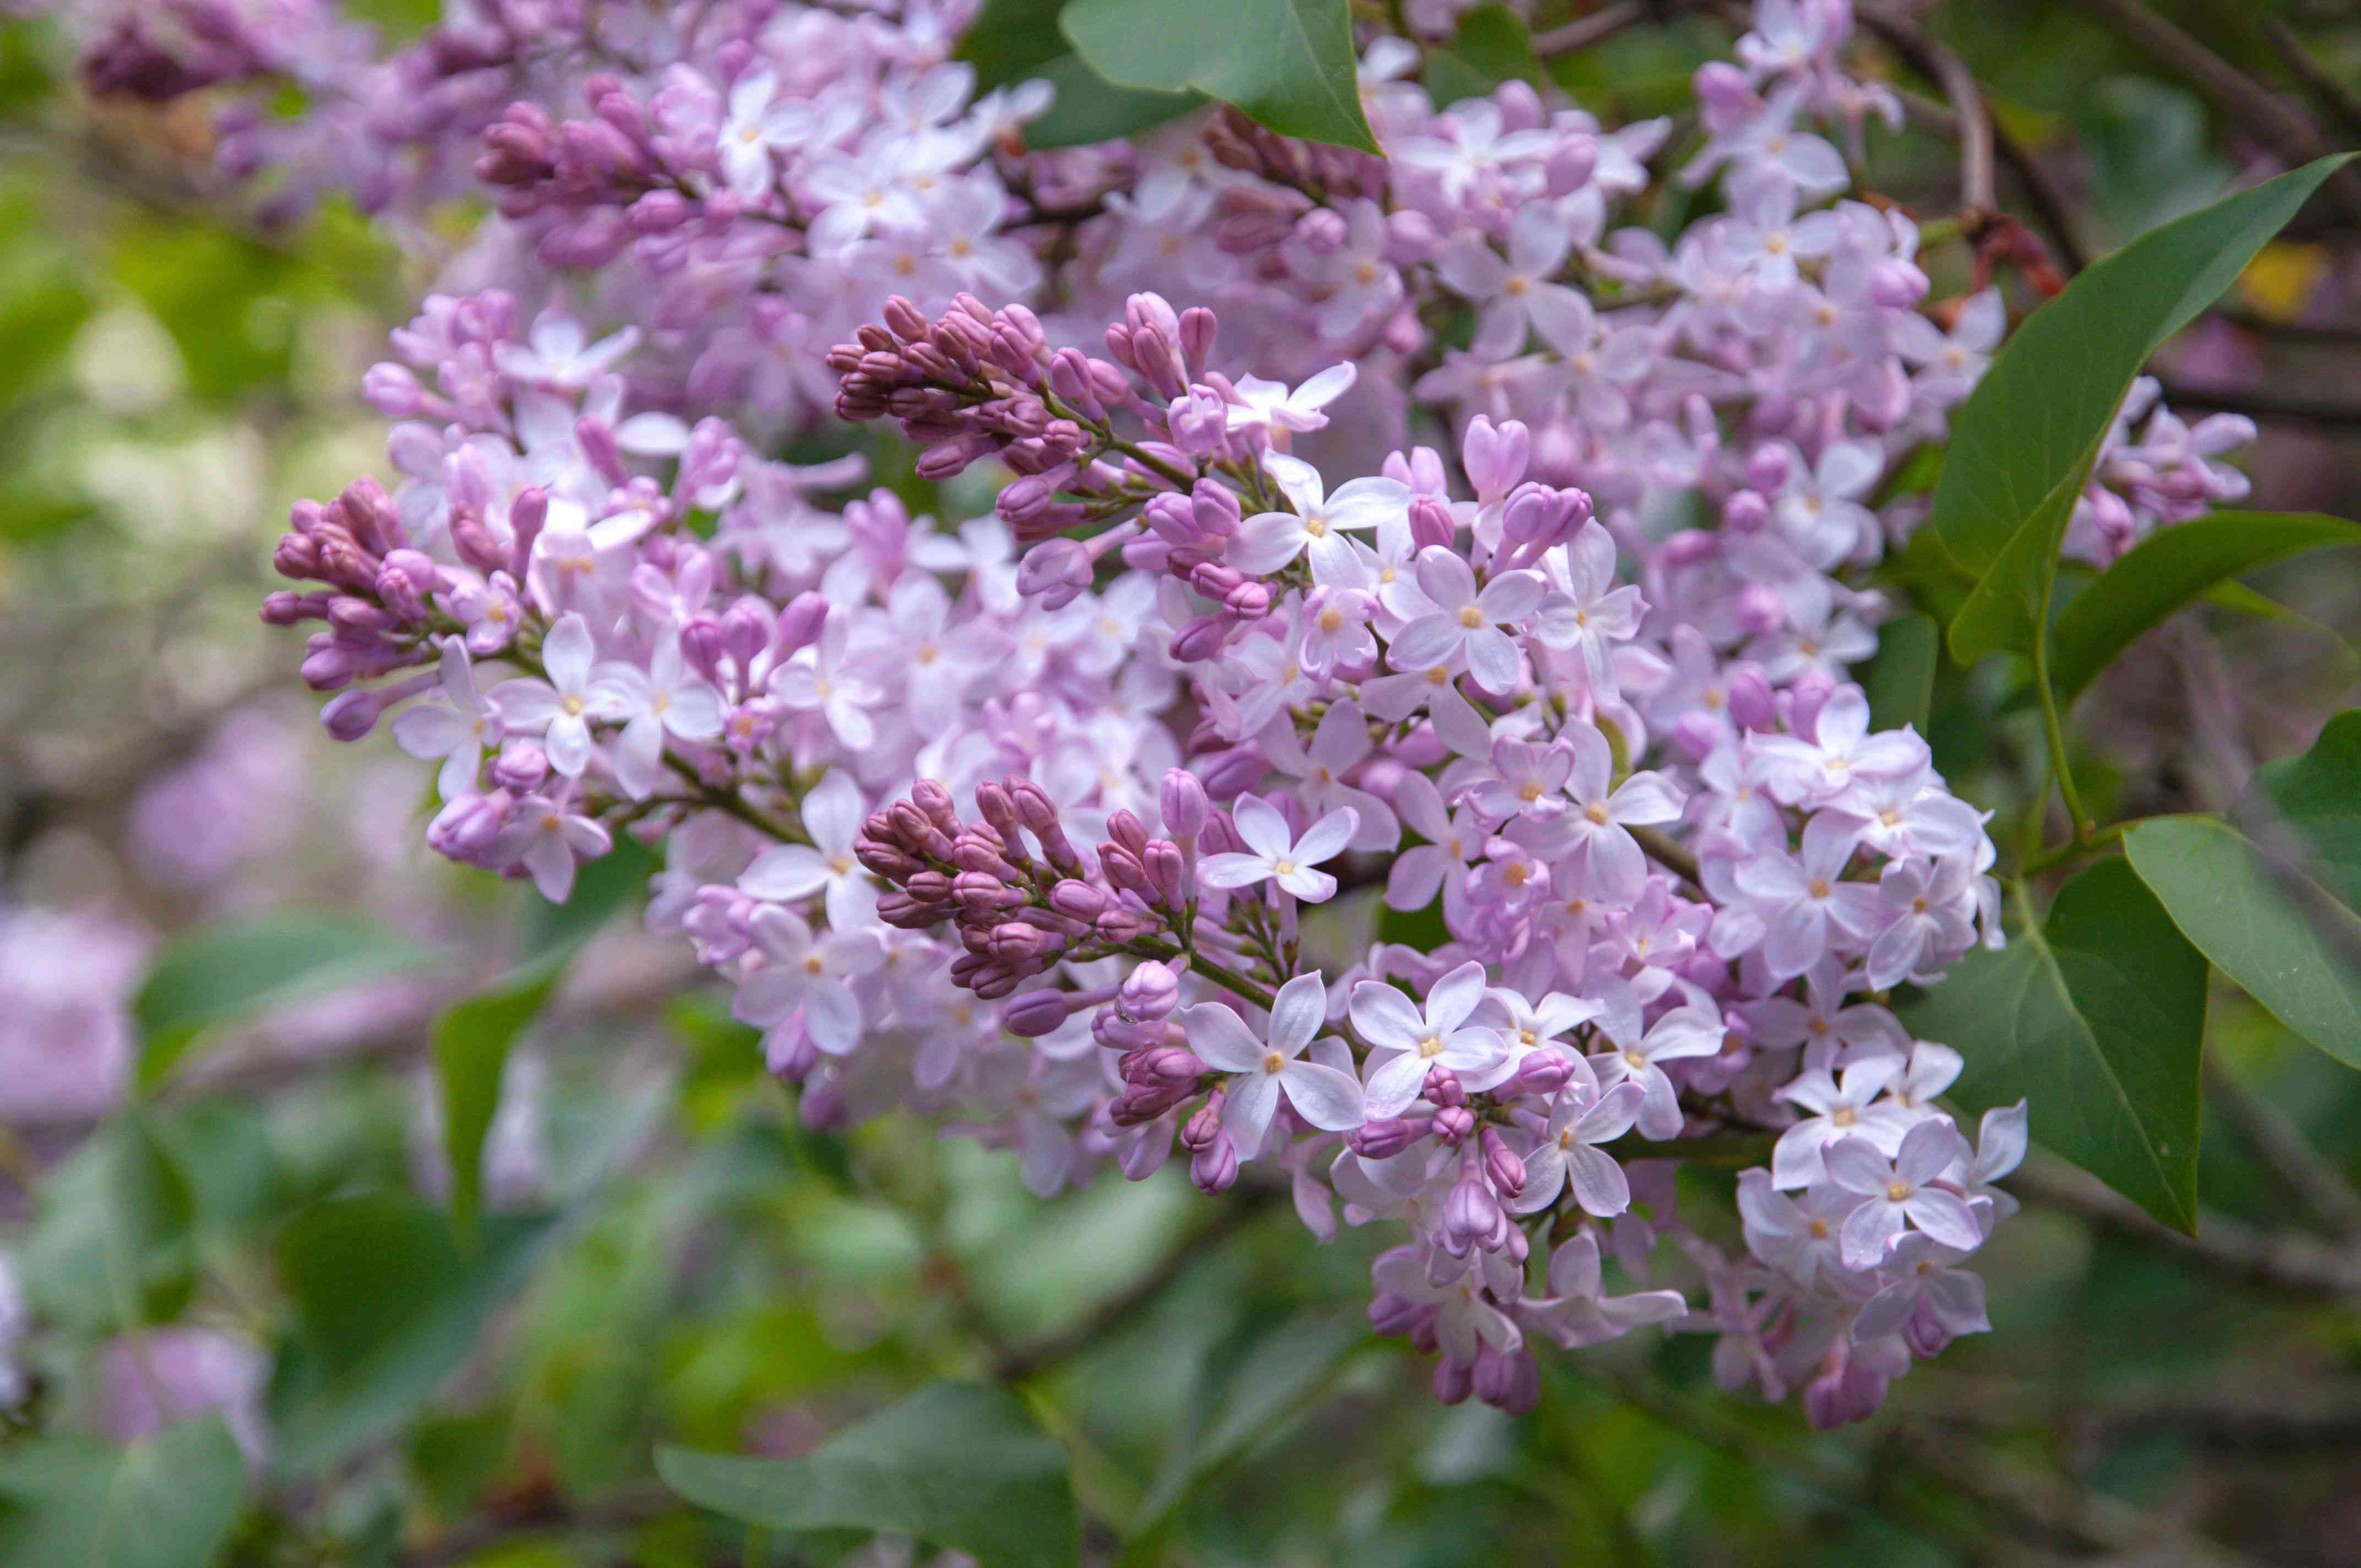 Lilac bush with small white and pink flowers and buds clustered on branches closeup